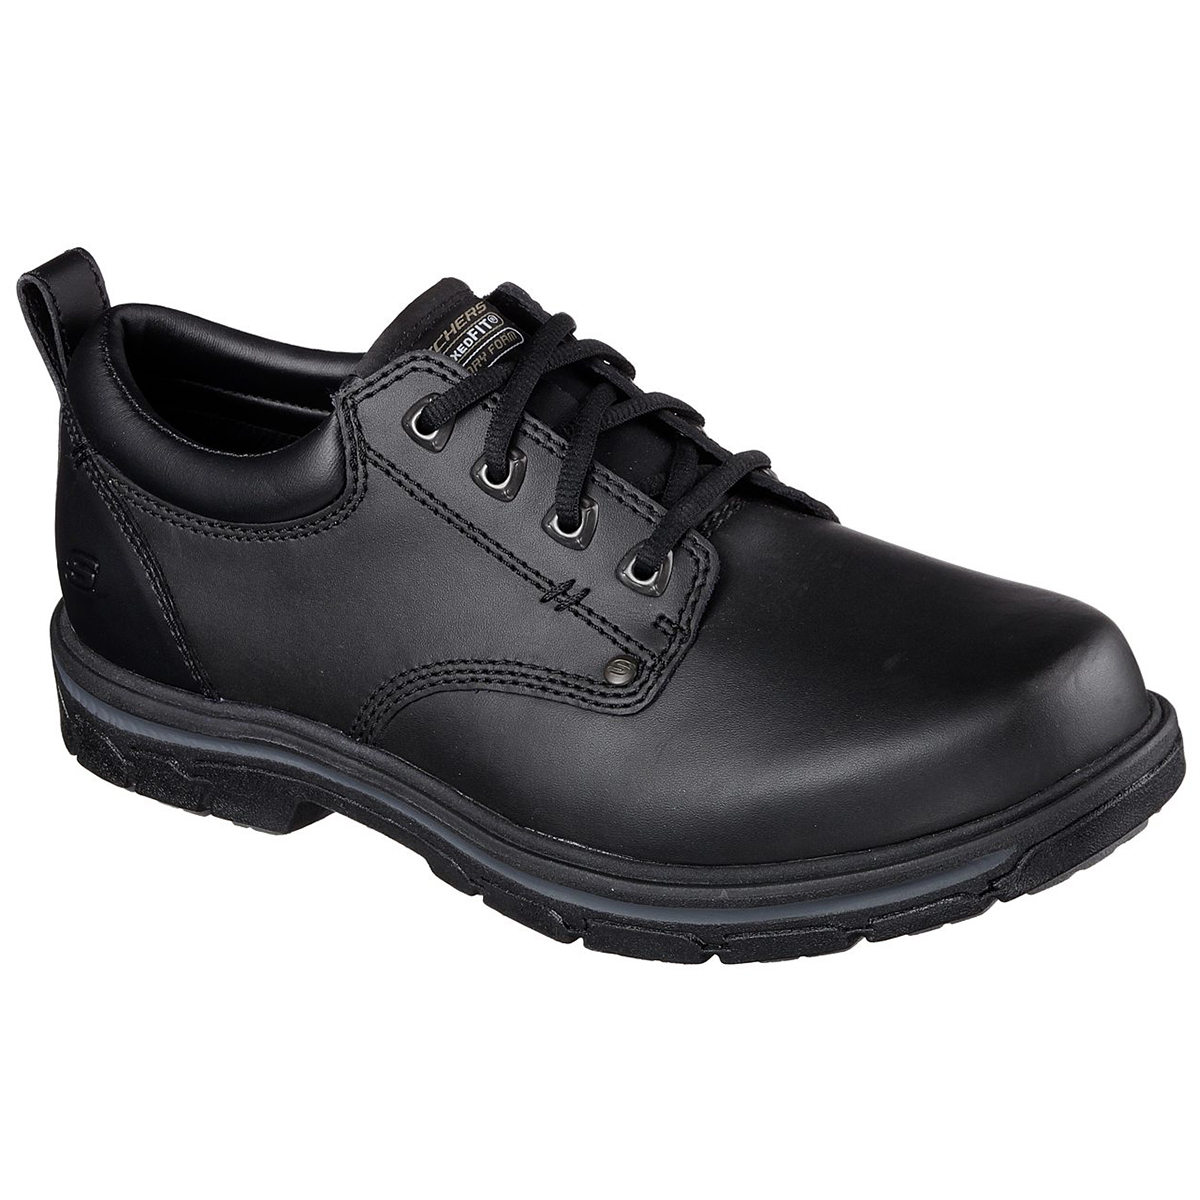 Skechers Men's Segment Rilar Lace Up Shoes, Wide - Black, 11